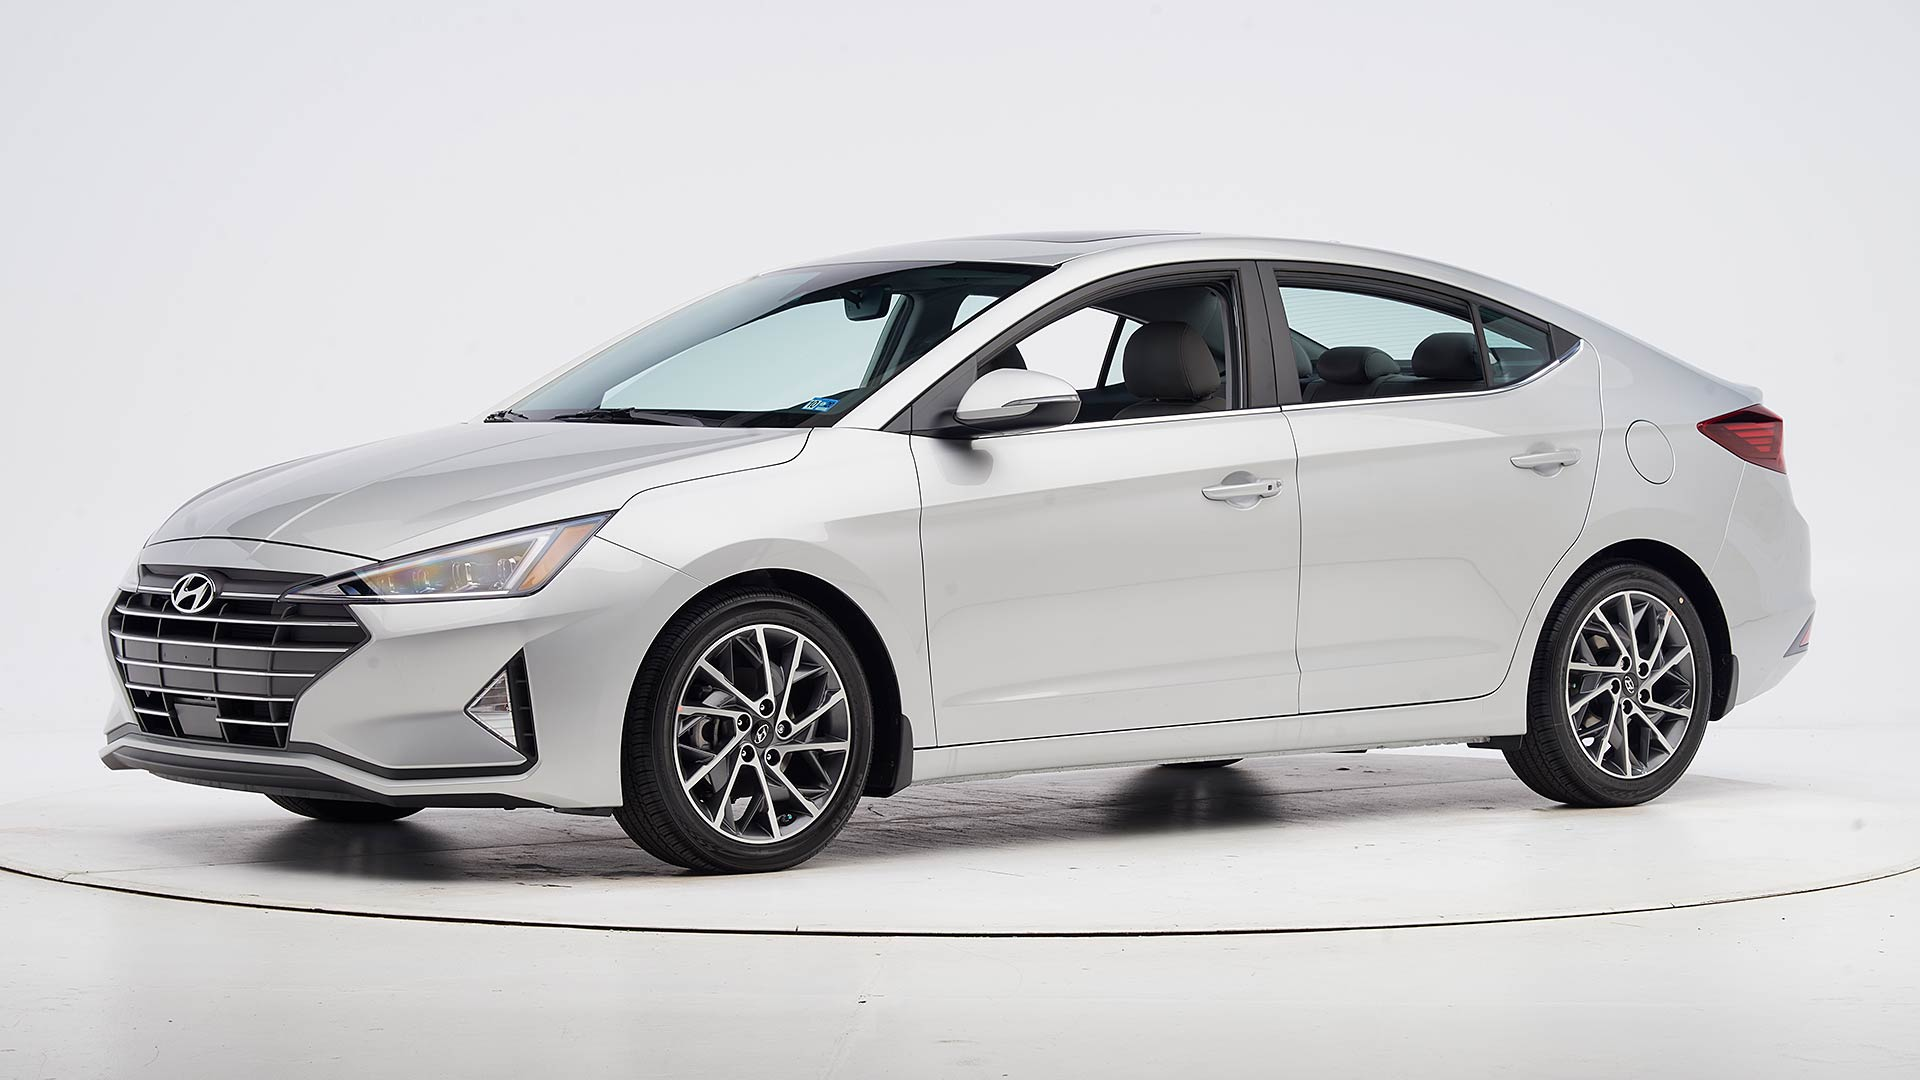 2020 Hyundai Elantra 4-door sedan